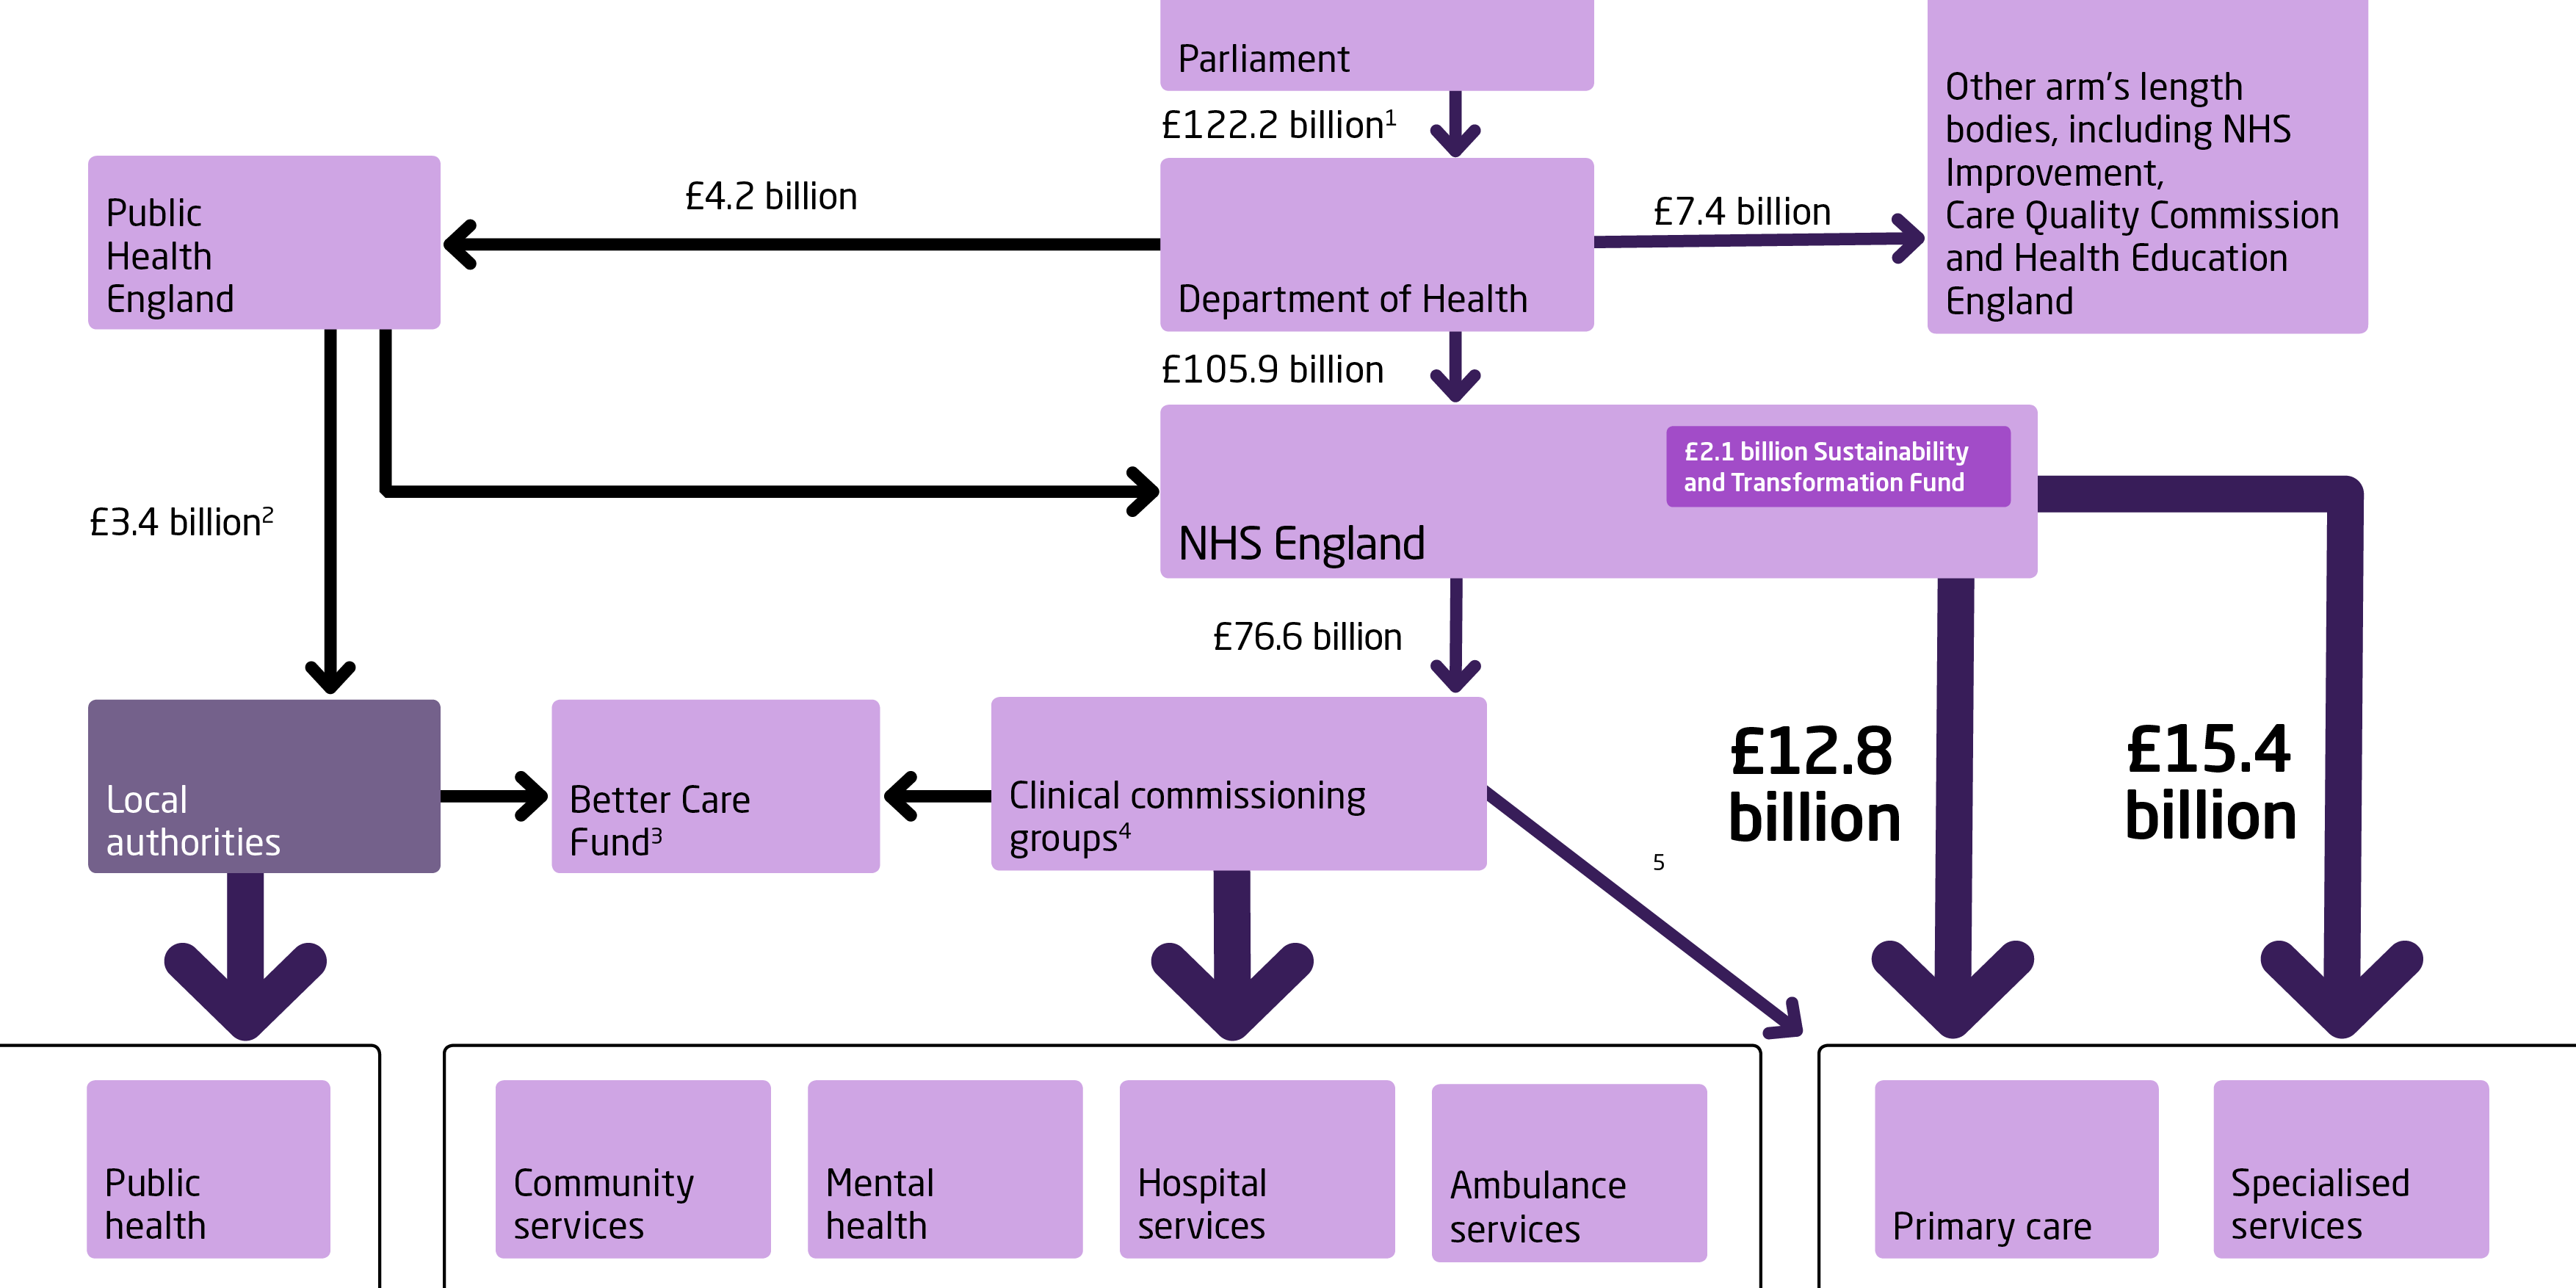 A Series Of Diagrams Explaining How The Nhs Is Structured Including How Providers Are Regulated And Commissioned